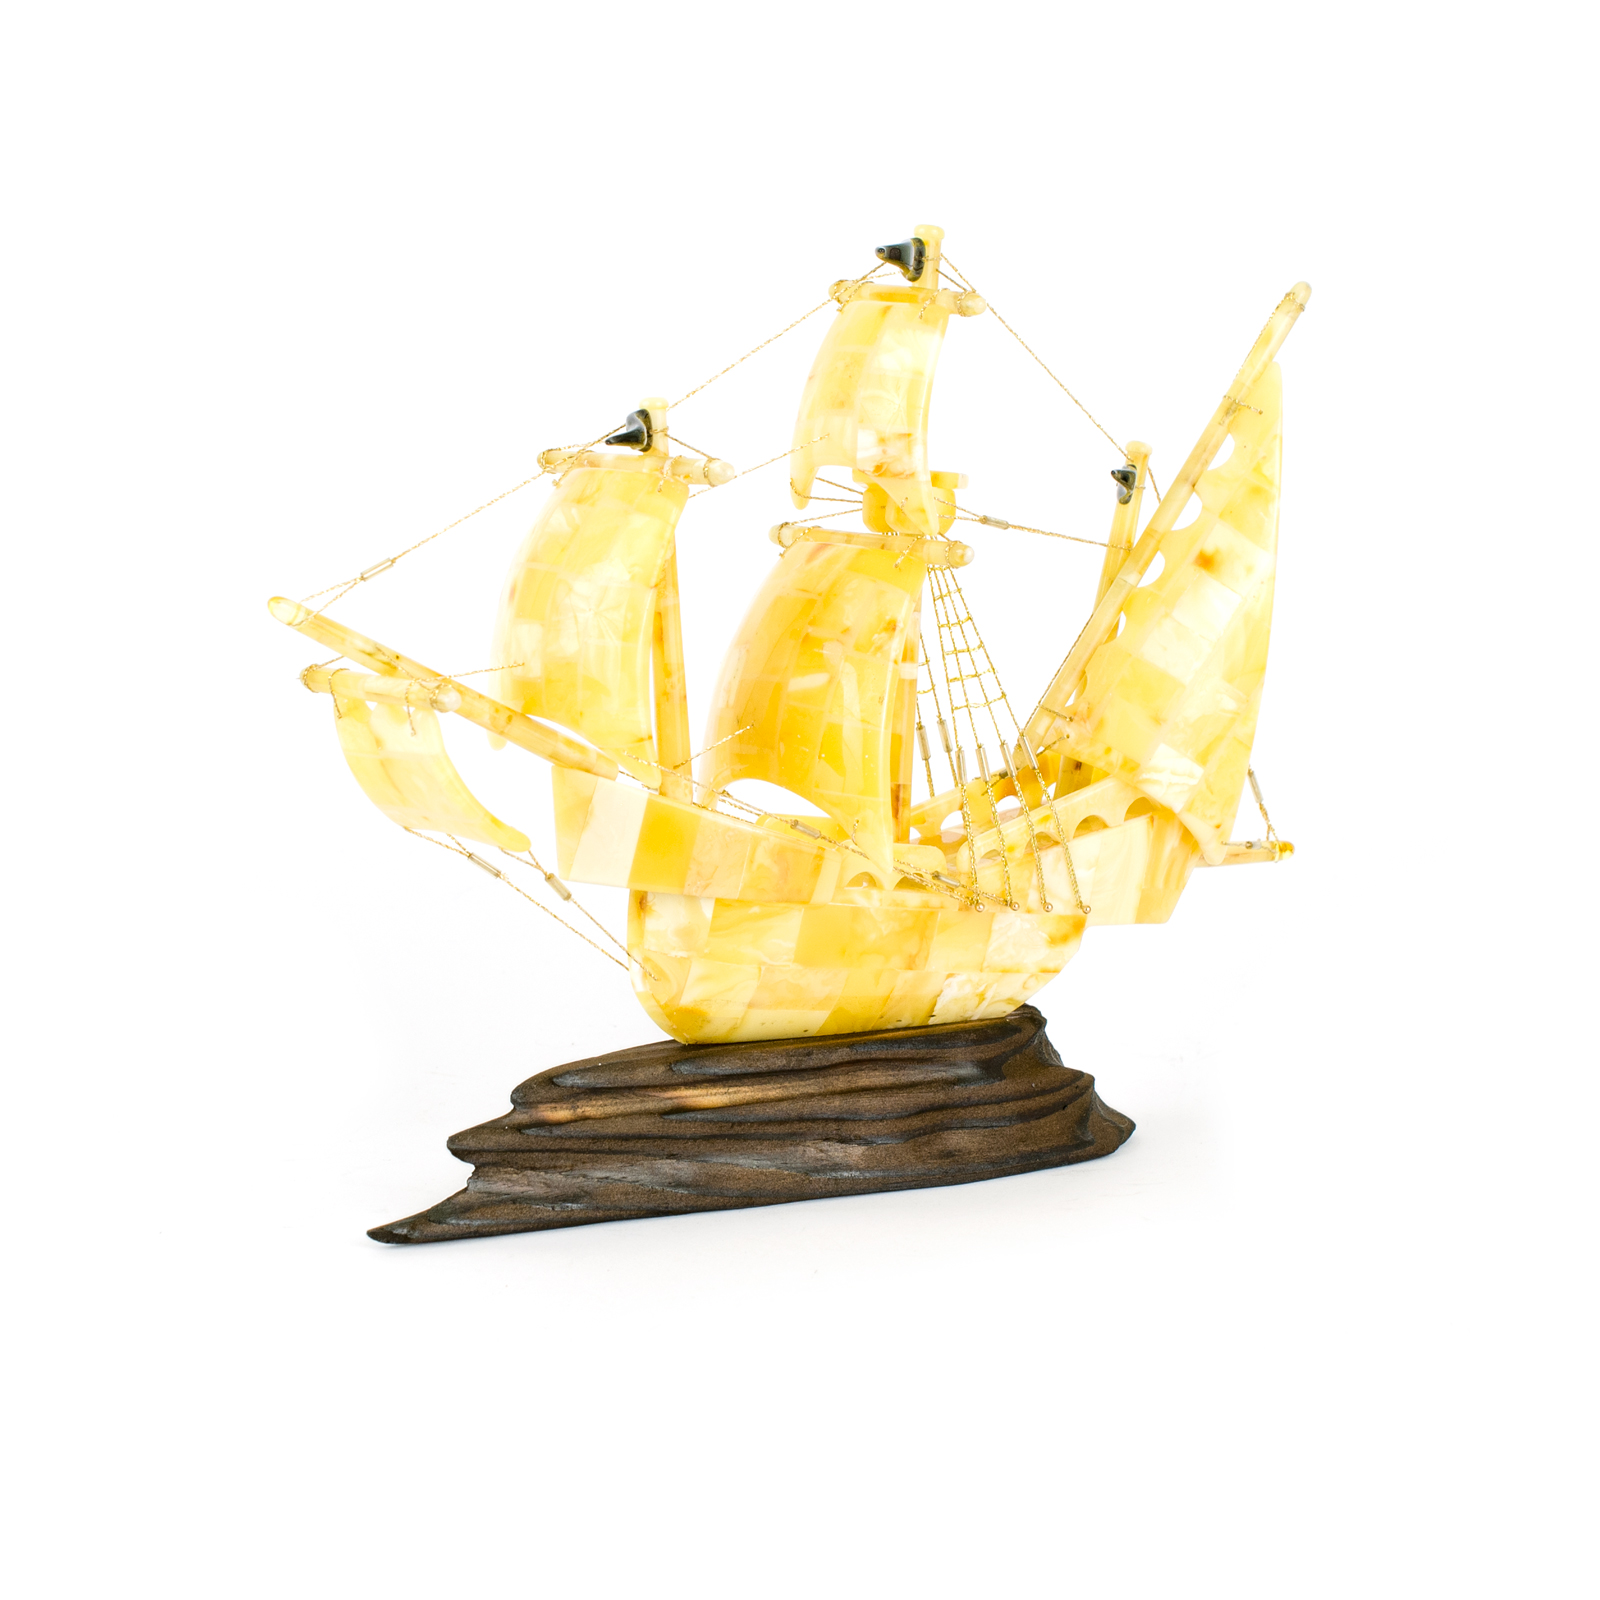 "Ship Figurine from Natural Baltic Amber ""Arabella"""